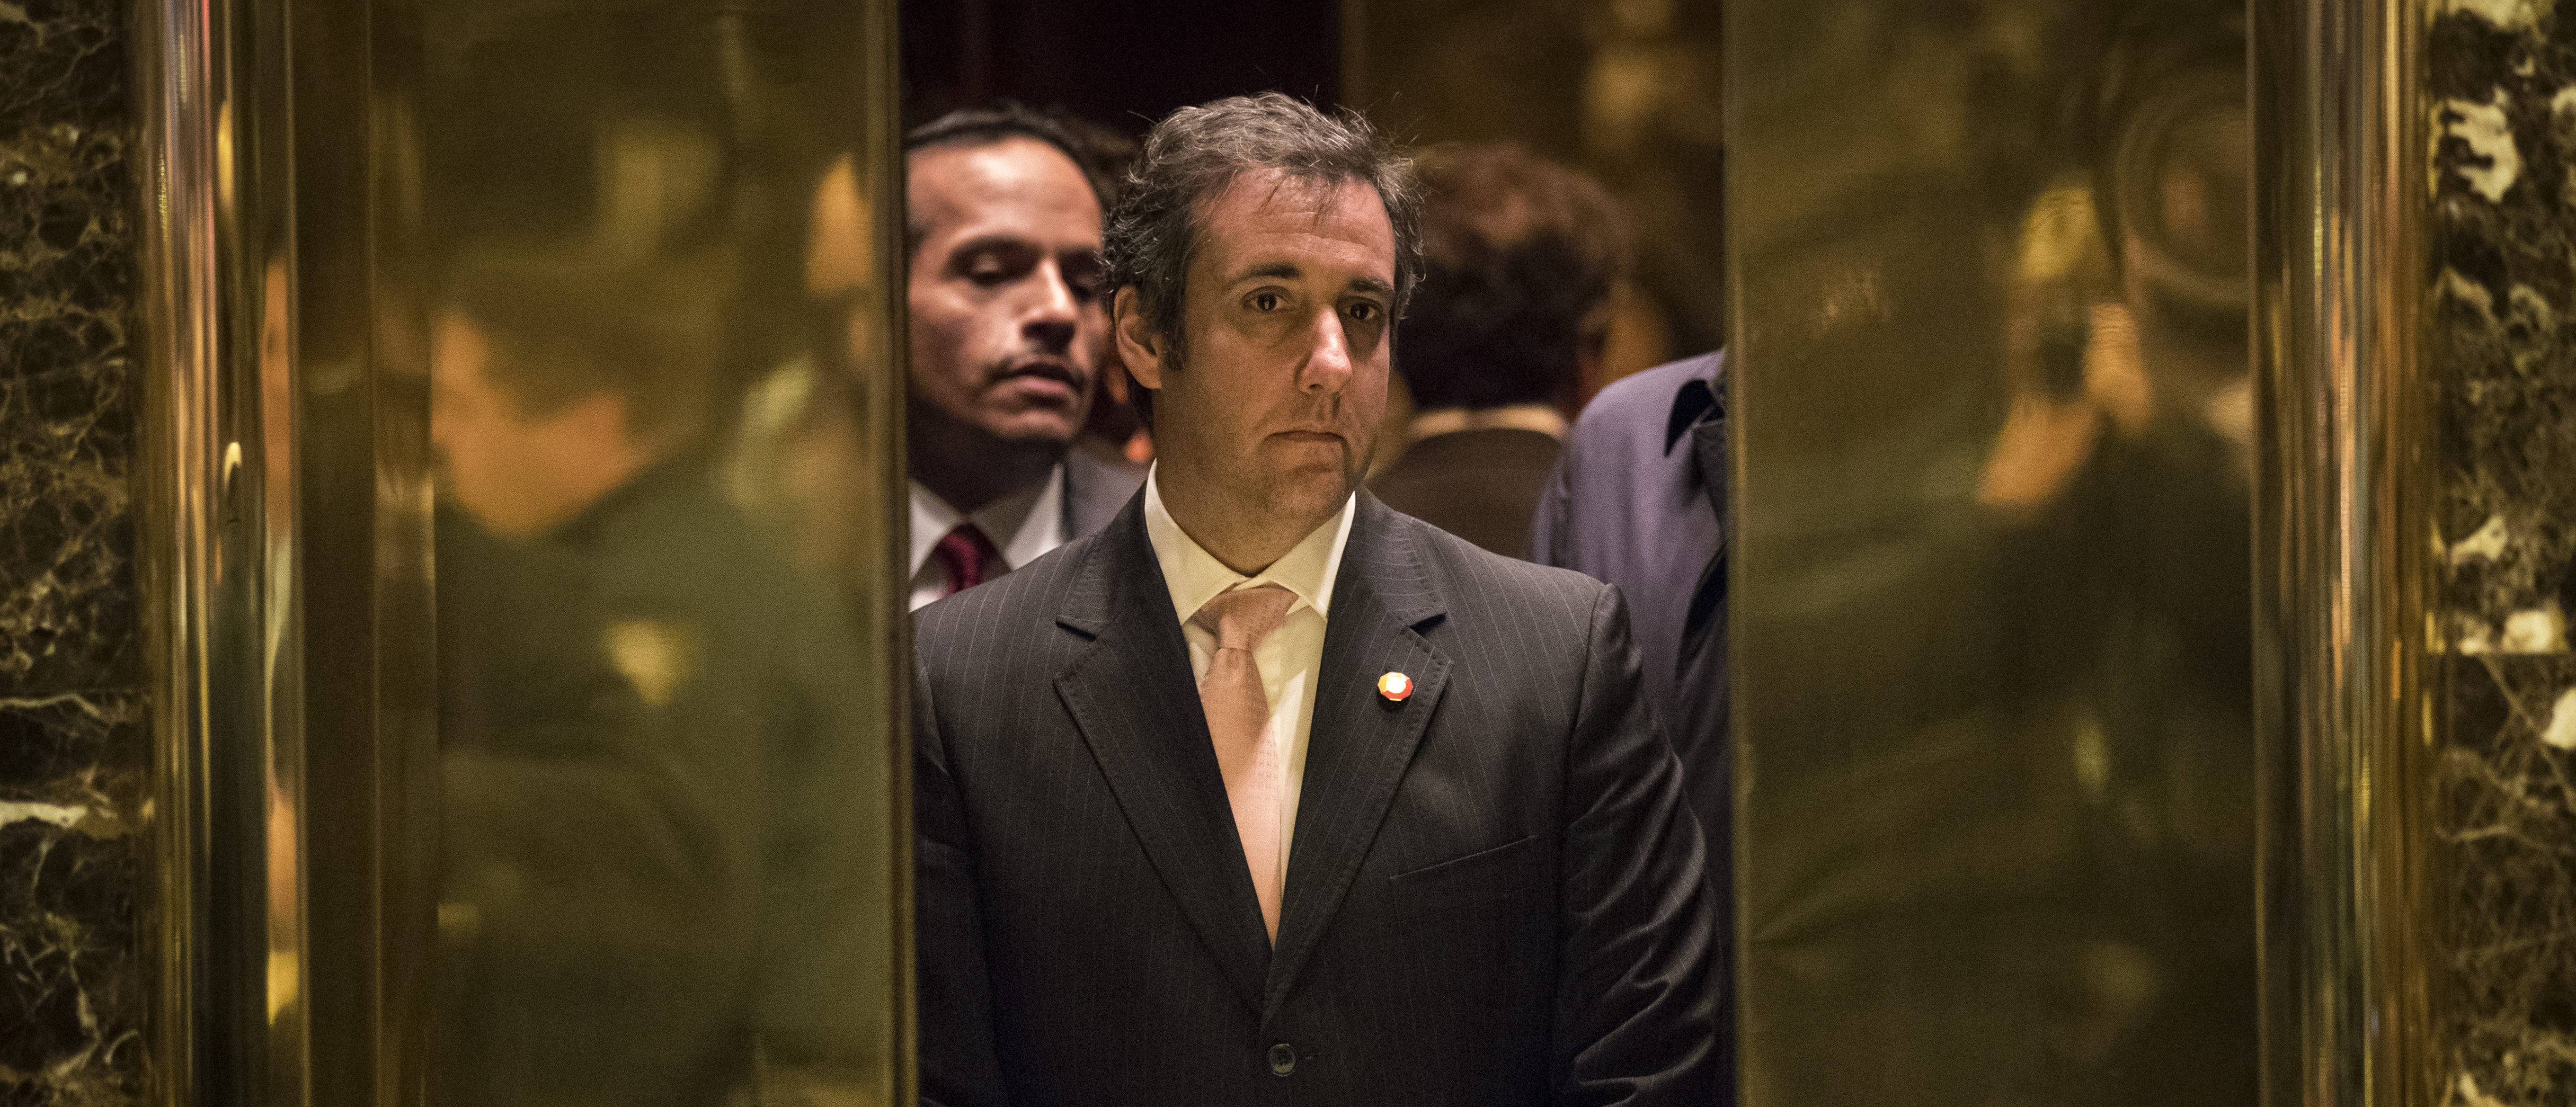 NEW YORK, NY - DECEMBER 12: Michael Cohen, personal lawyer for President-elect Donald Trump, gets into an elevator at Trump Tower, December 12, 2016 in New York City. President-elect Donald Trump and his transition team are in the process of filling cabinet and other high level positions for the new administration. (Photo by Drew Angerer/Getty Images)